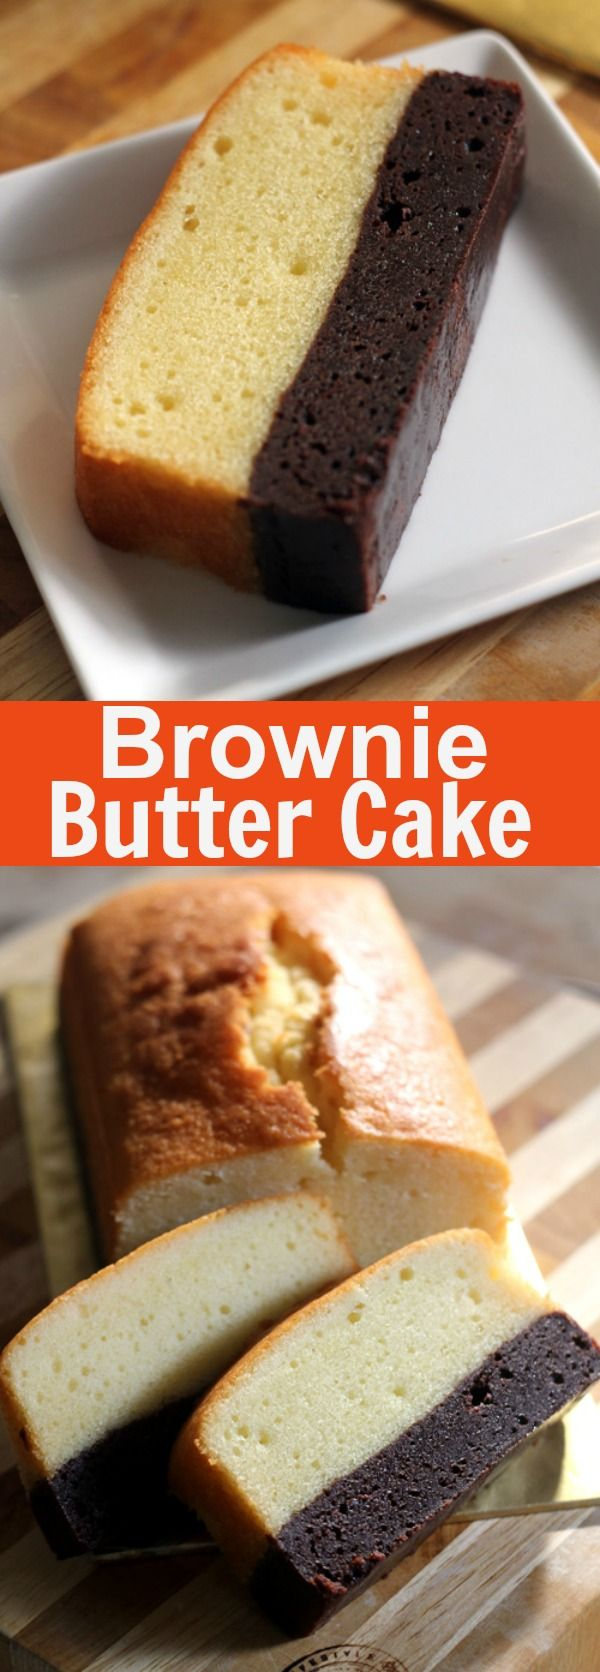 Brownie butter cake – brownie and butter cake combined into one decadent and to-die-for cake, must-try | rasamalaysia.com